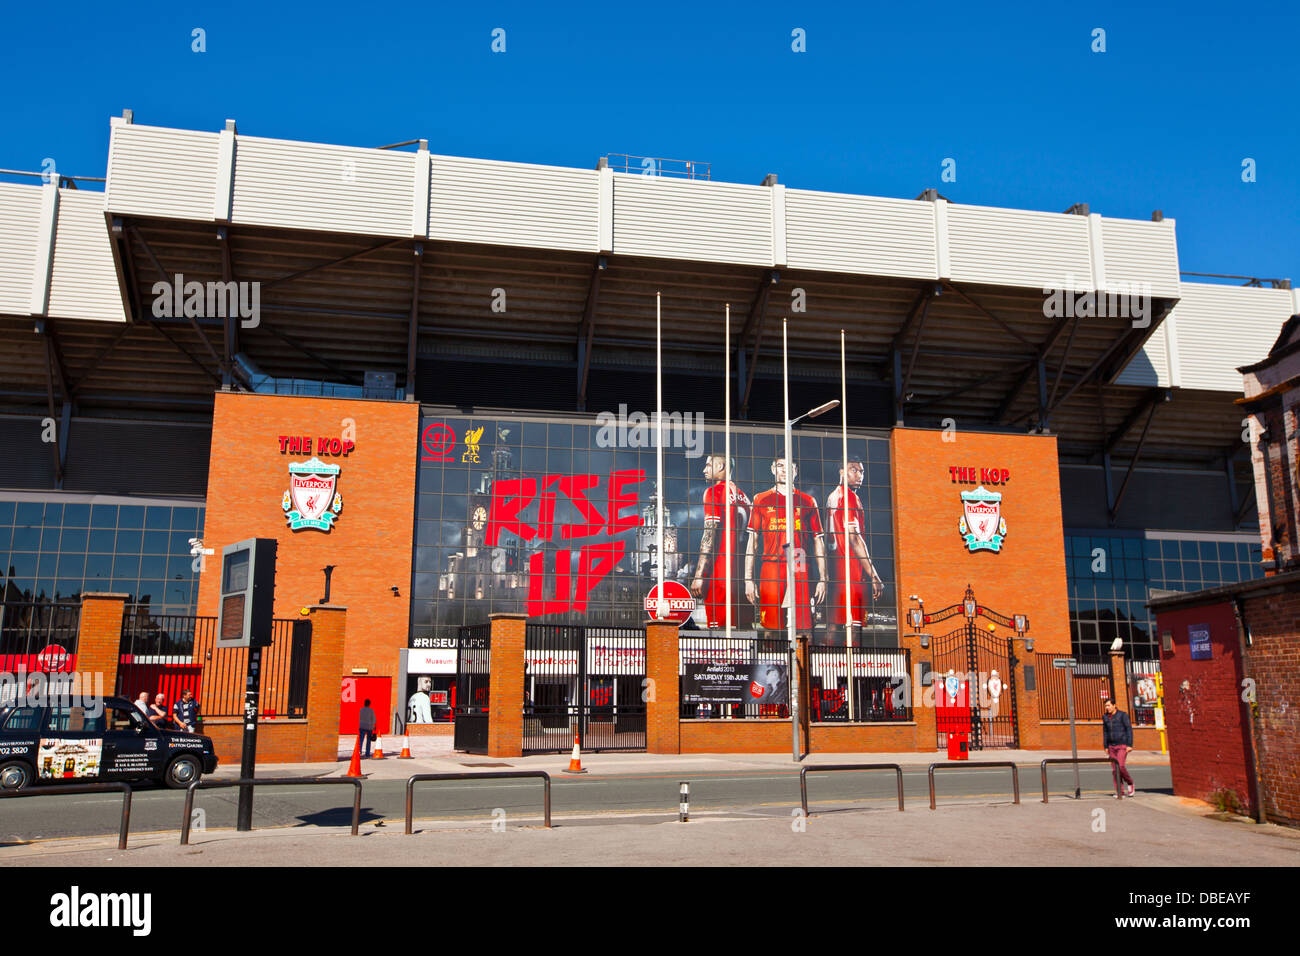 Anfield stadium is home of Liverpool Football Club one of the most  successful English Premier League football clubs 048a87196